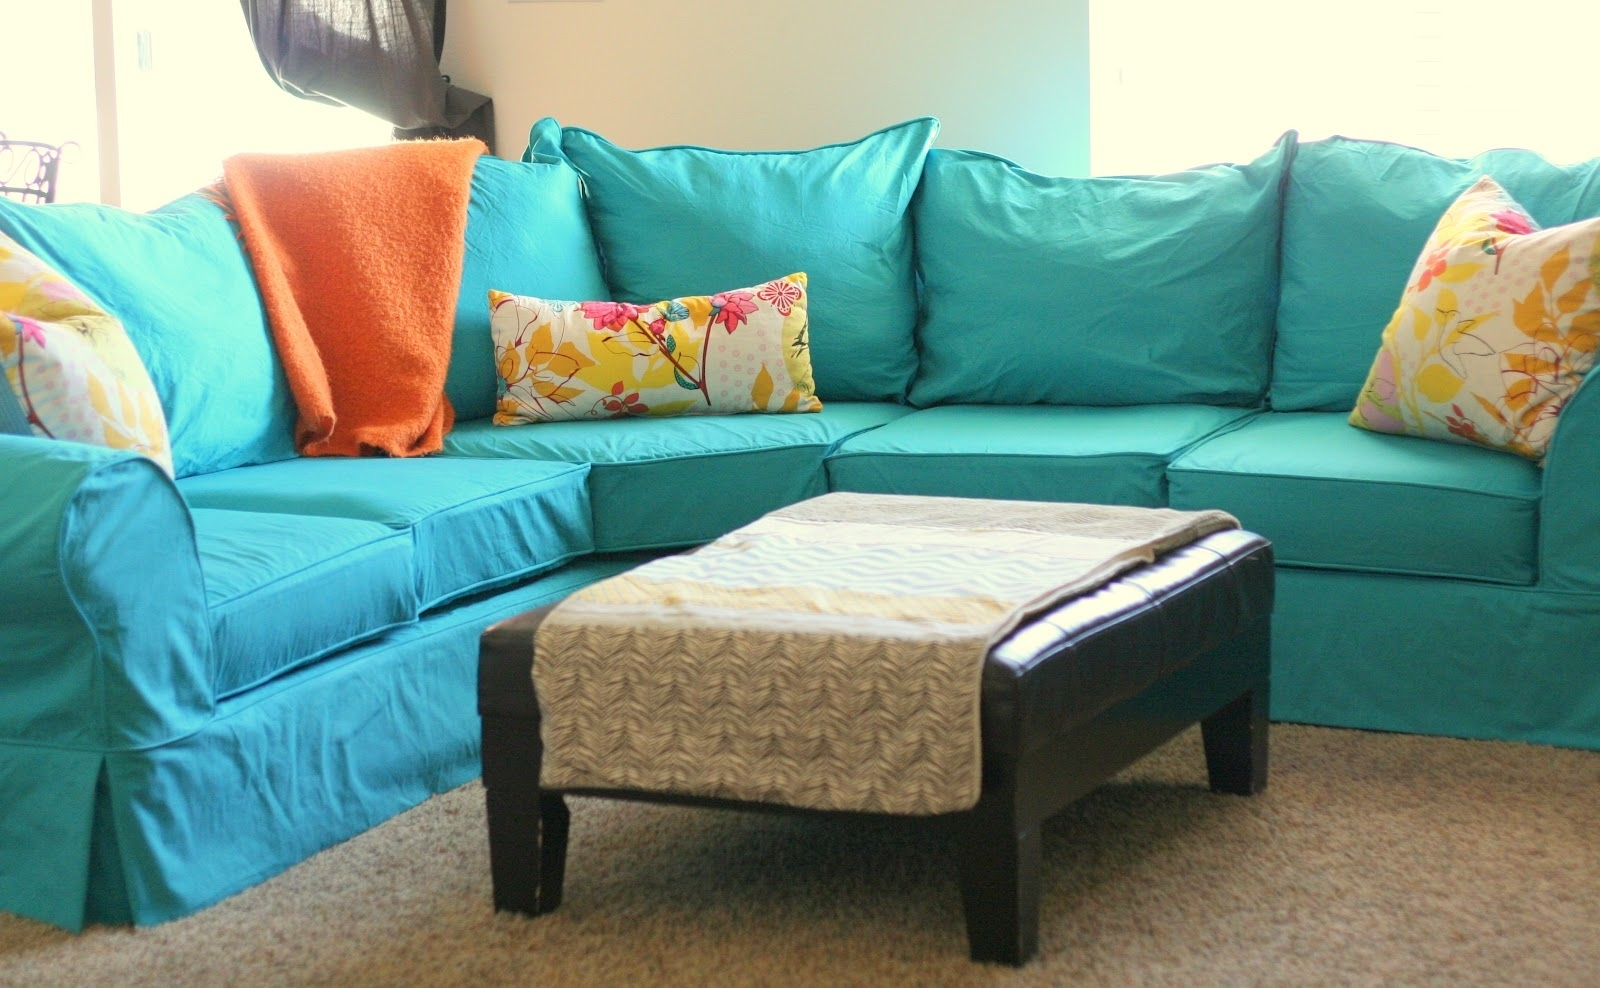 Inspiring Custom Homemade Slipcovers For Grey Sectional - S3Net pertaining to Sectional Sofas With Covers (Image 4 of 15)